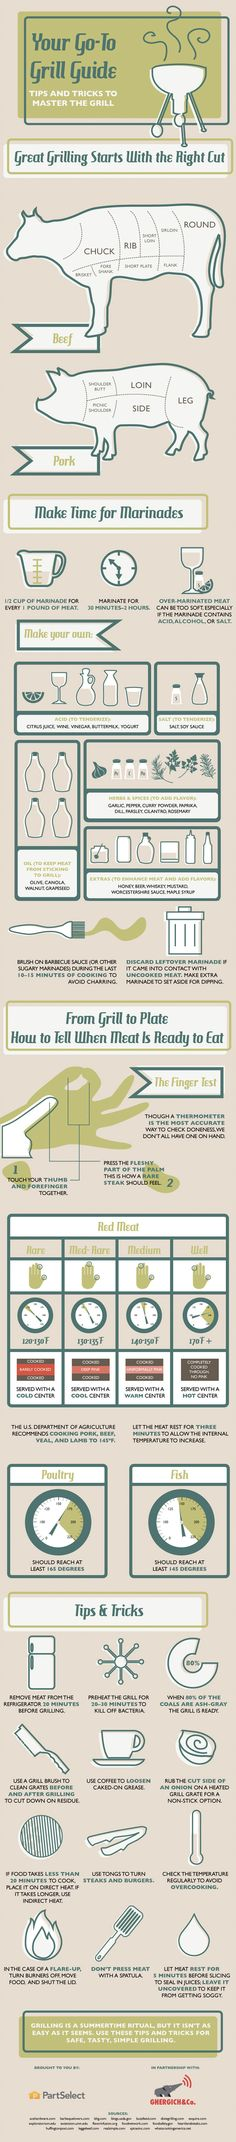 This infographic offers up some nice tips on how to grill better with a great trick on how to know when meat is cooked using your hand. >> https://www.finedininglovers.com/blog/food-drinks/how-to-grill-food-infographic/